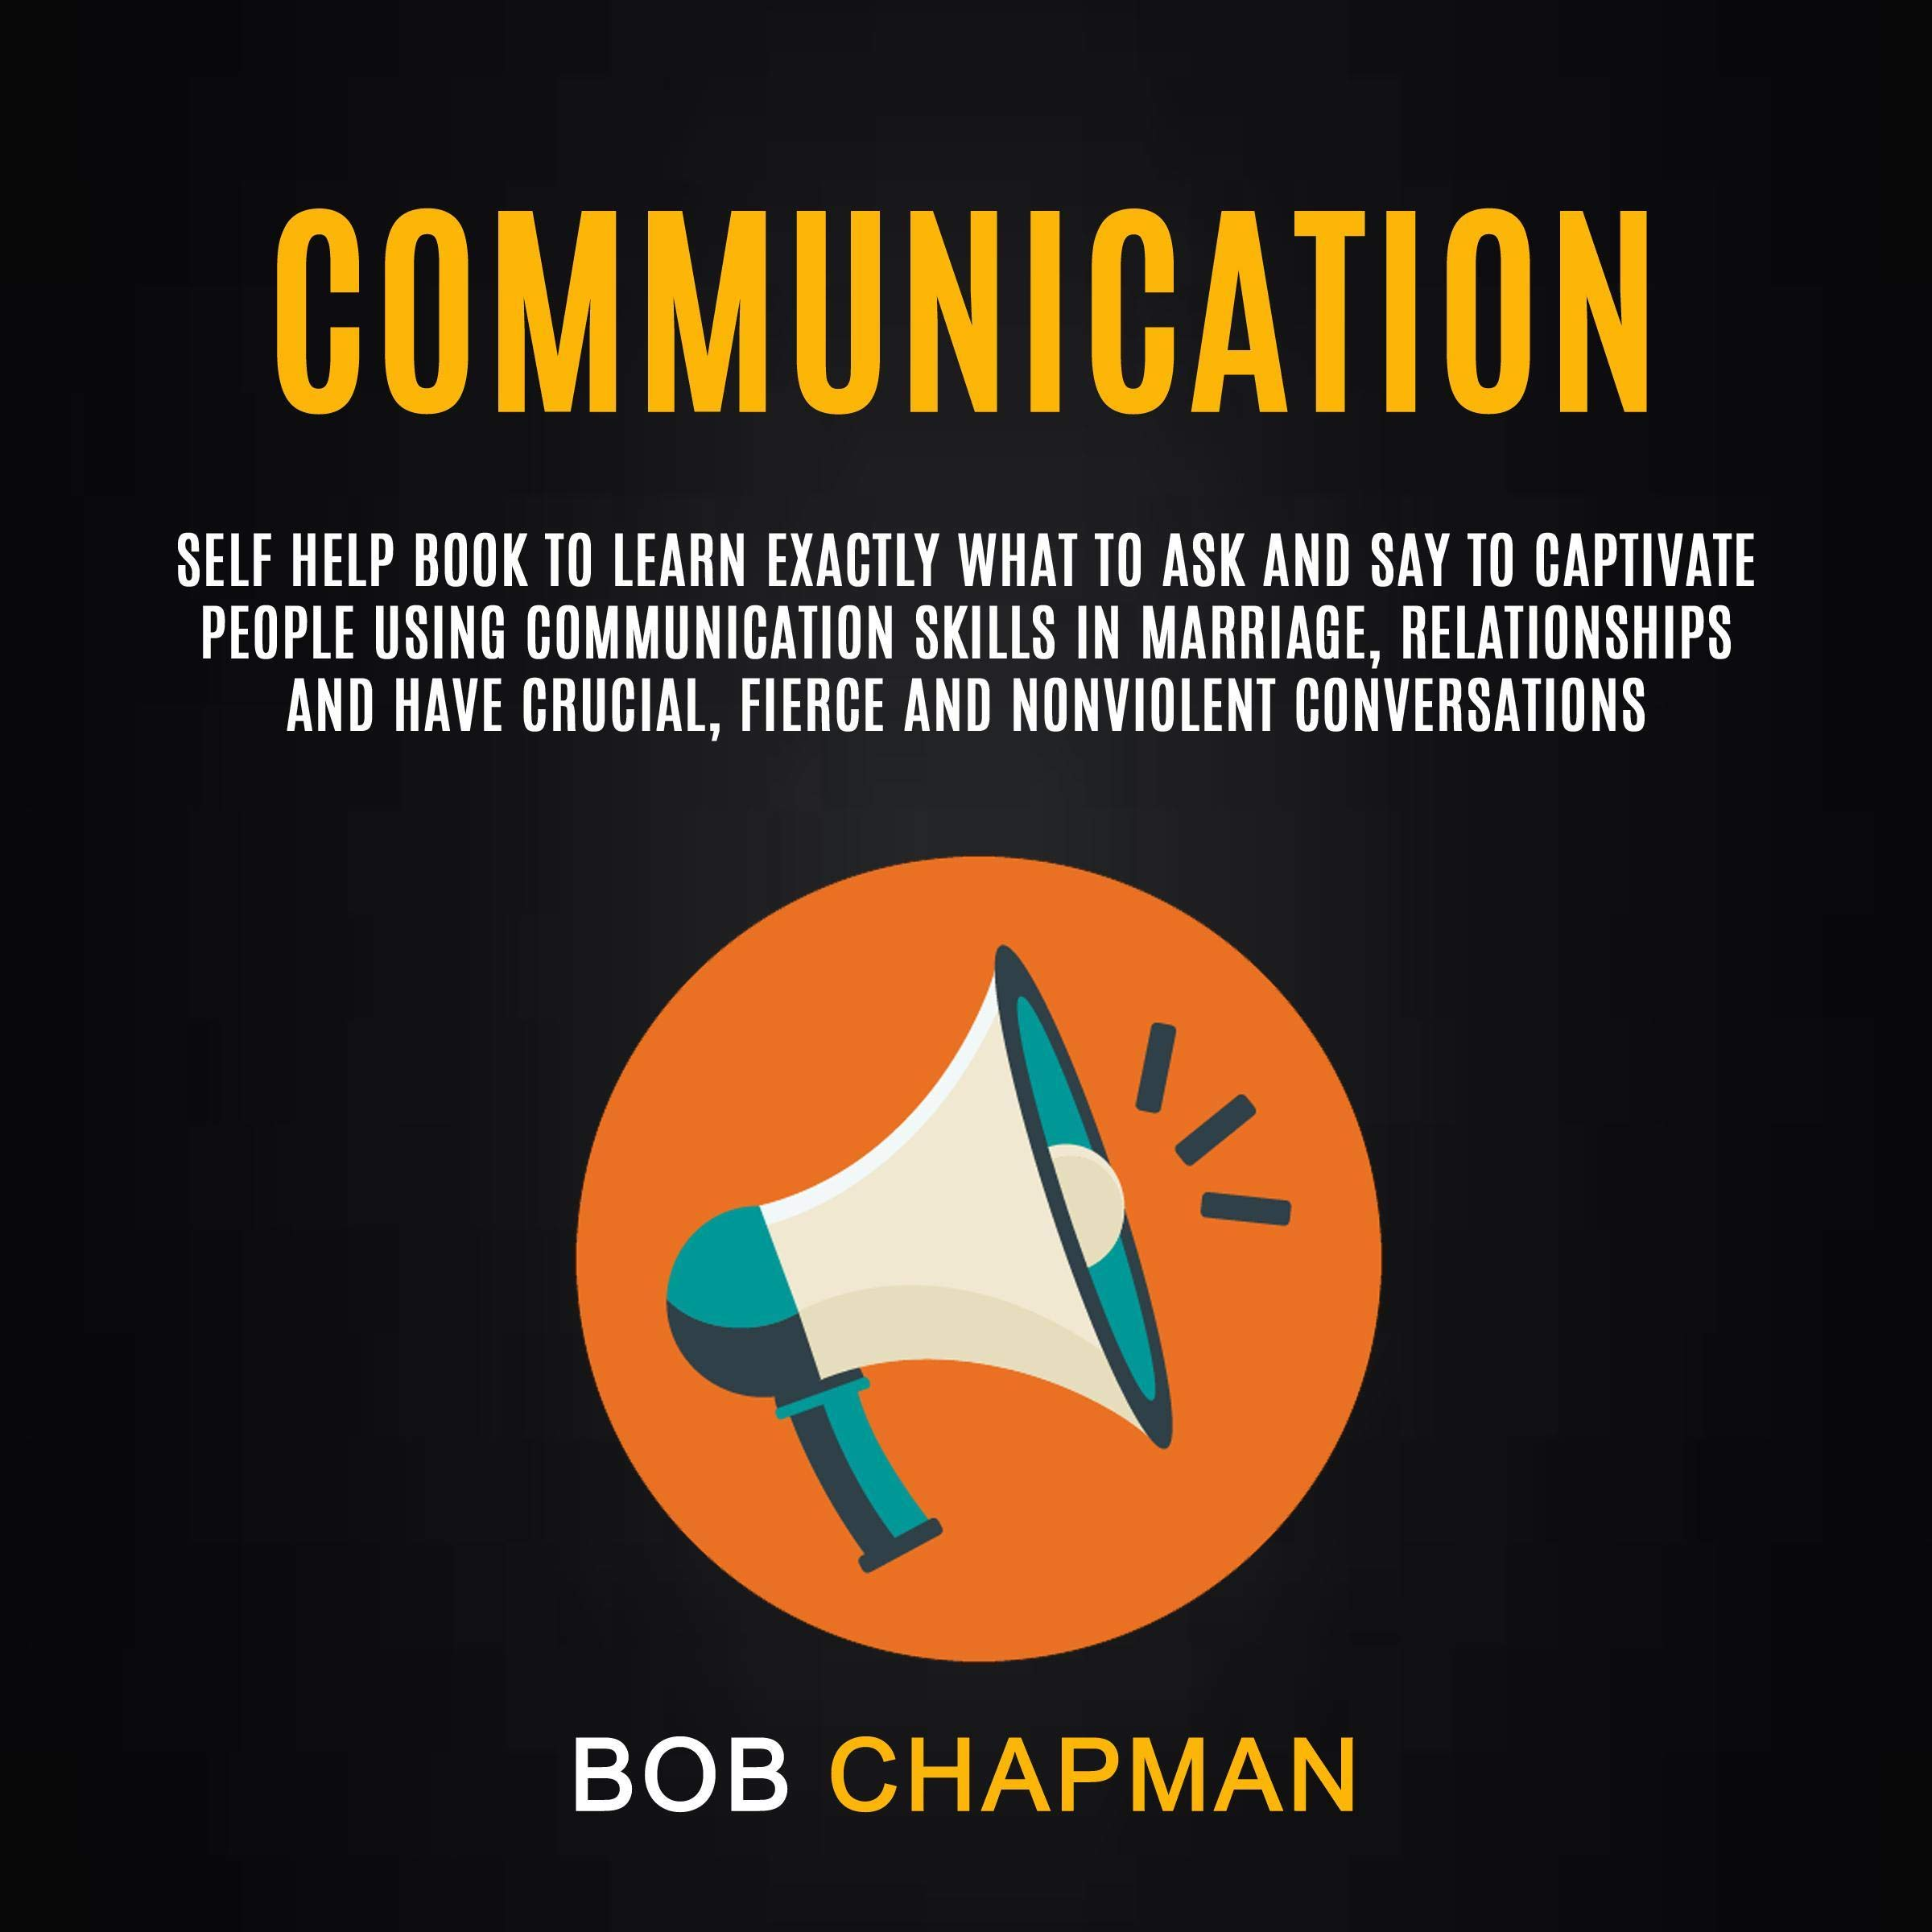 Communication: Self Help Book To Learn Exactly What To Ask And Say To Captivate People Using Communication Skills In Marri...